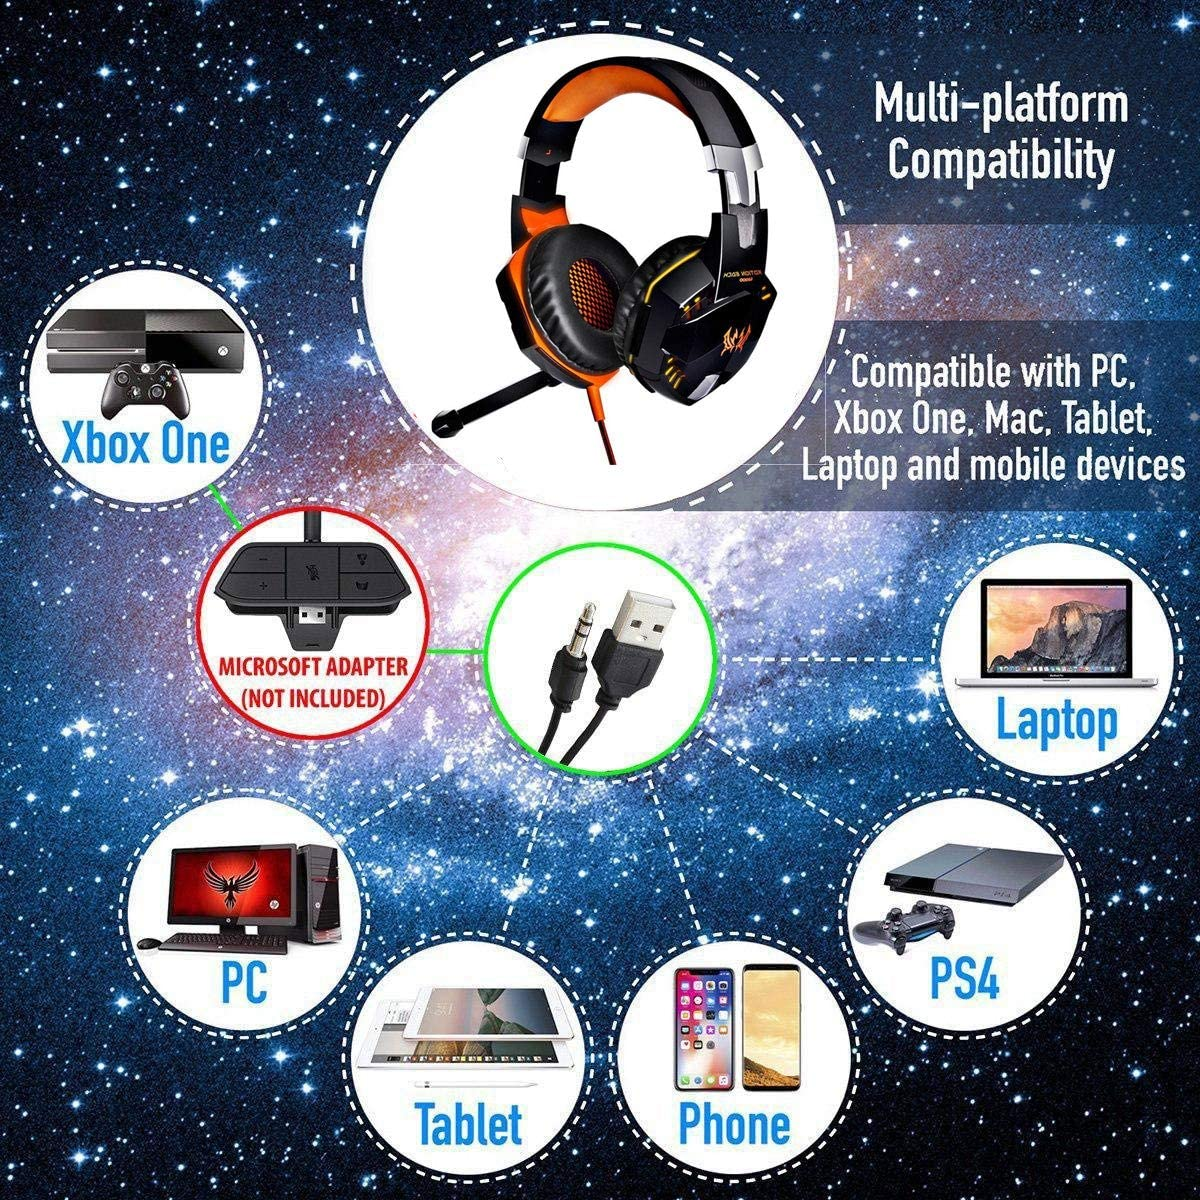 Orange Gaming Headsets Headphones with Light Mic Stereo Earphones Deep Bass for Laptop Tablet SP4 X-Box Computer